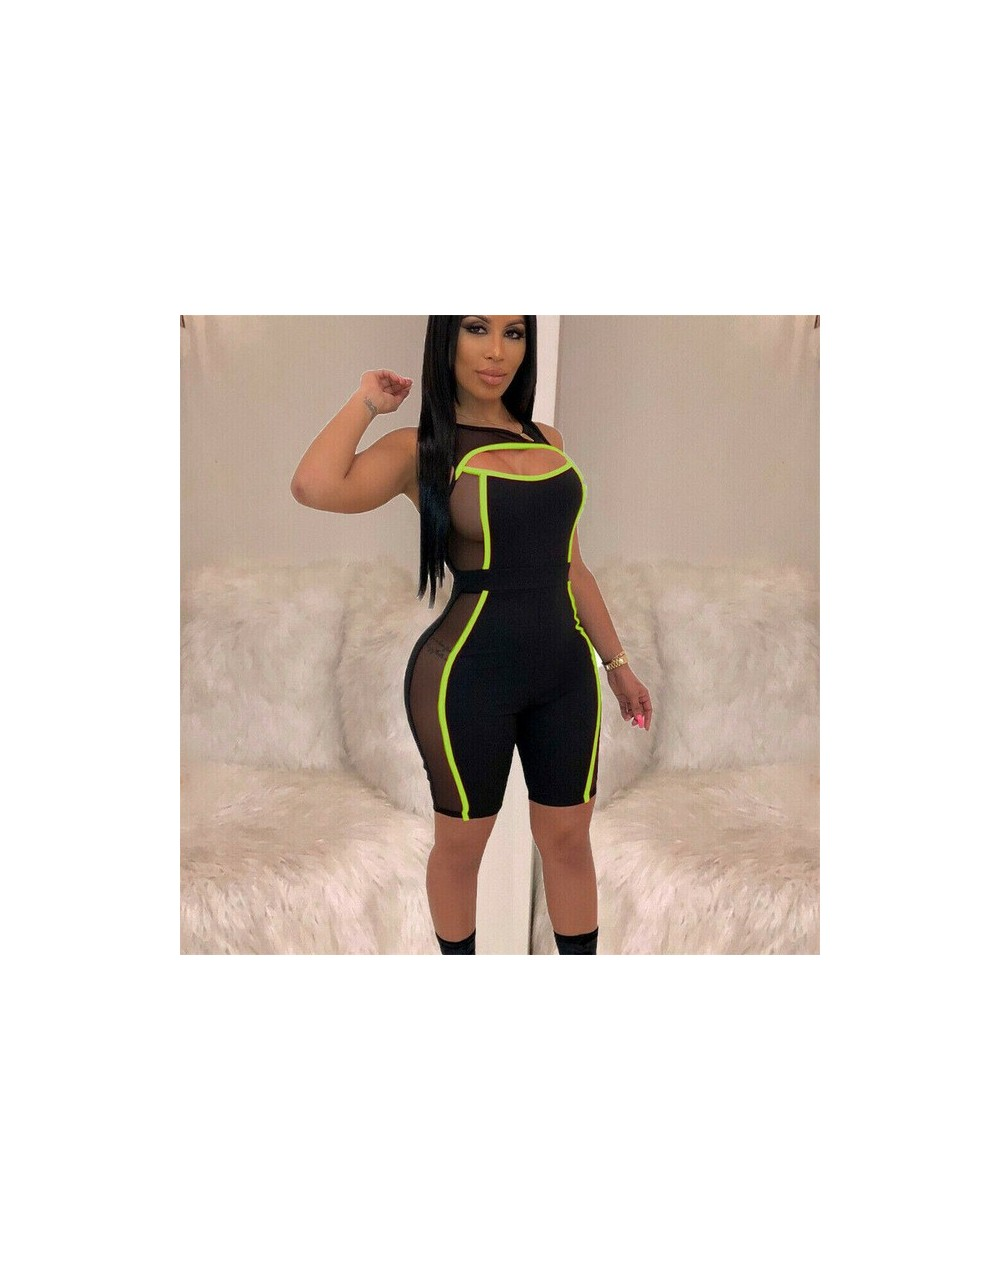 2019 New Women Mesh Patchwork Short Pants Jumpsuits Sleeveless Cut Out Bodycon Playsuit Romper Clubwear Outfit - Green - 400...